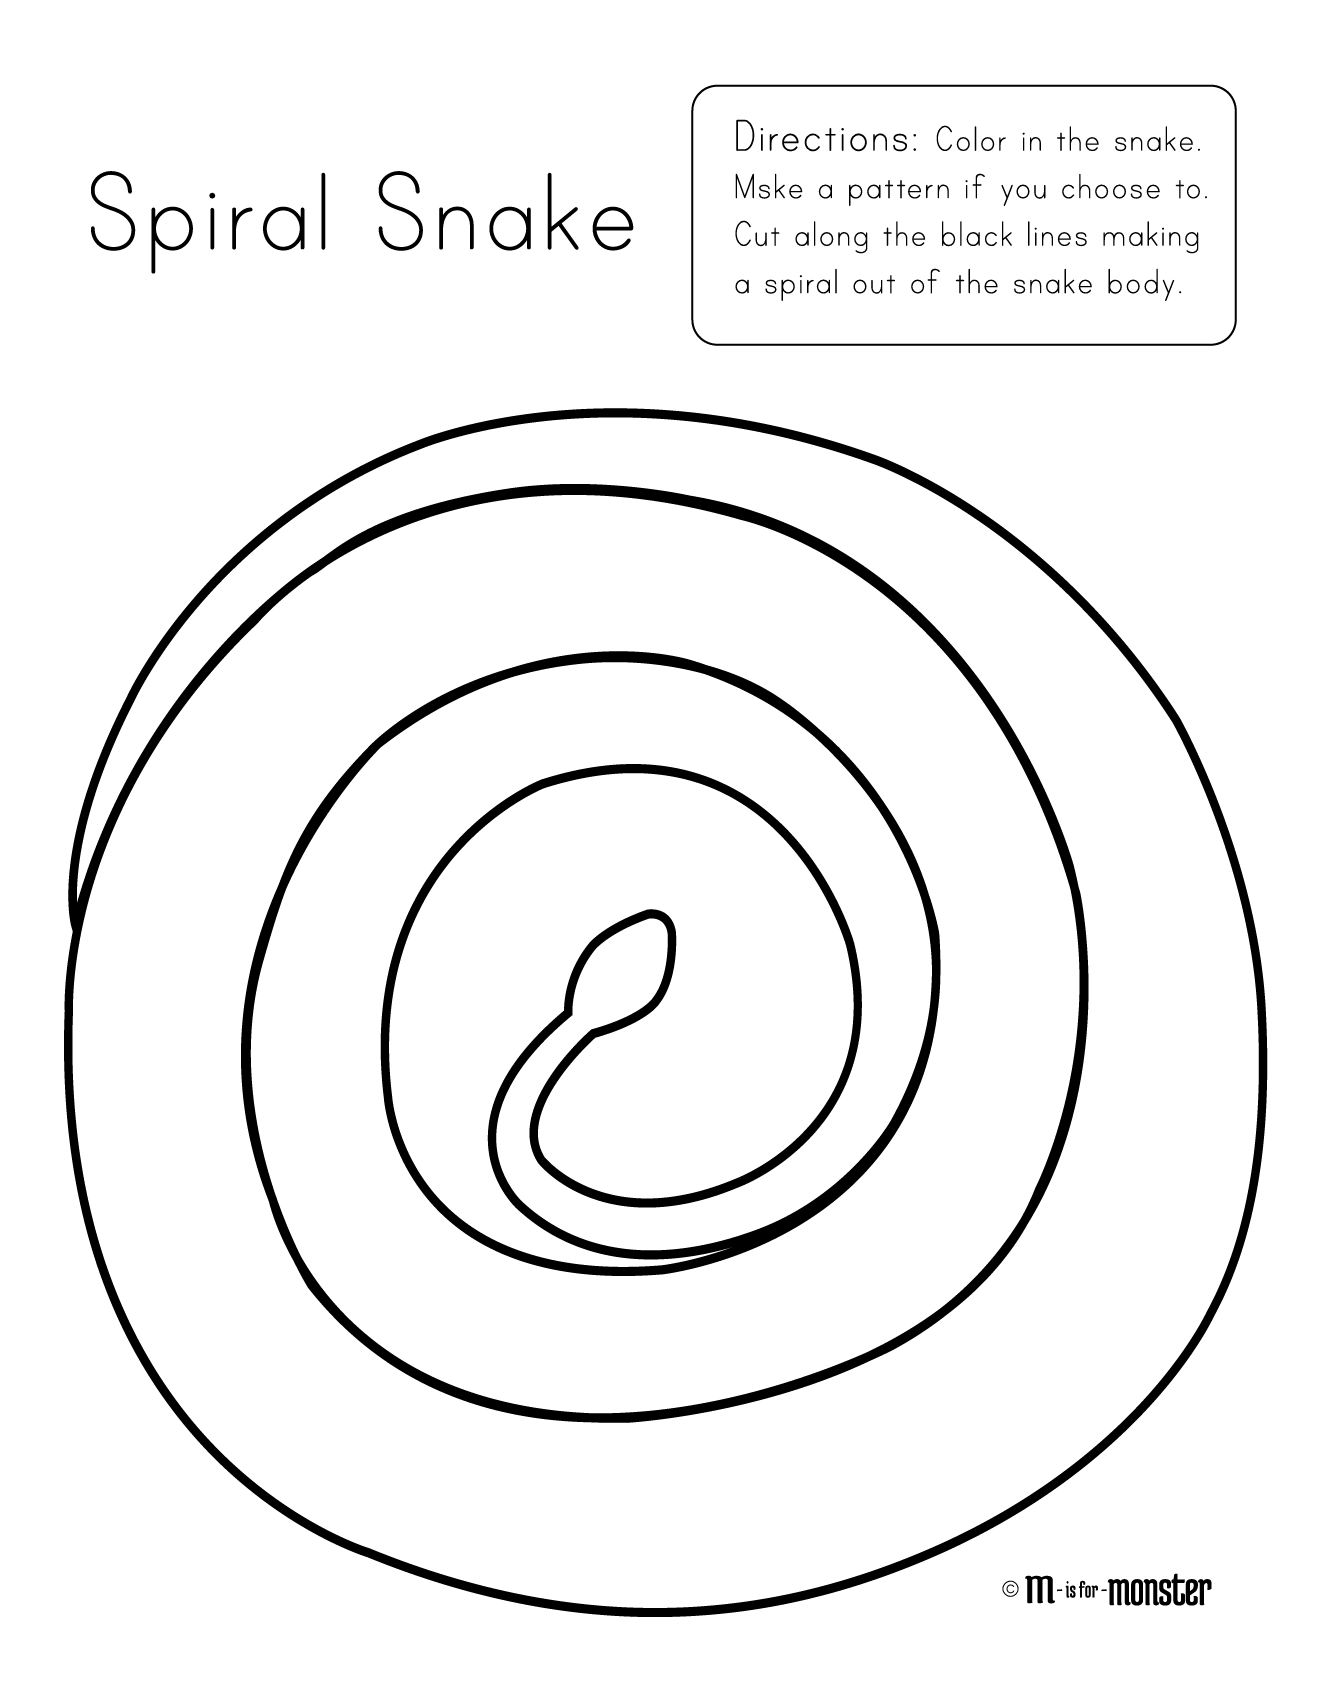 Snake m is for. Drawing spiral line banner freeuse download